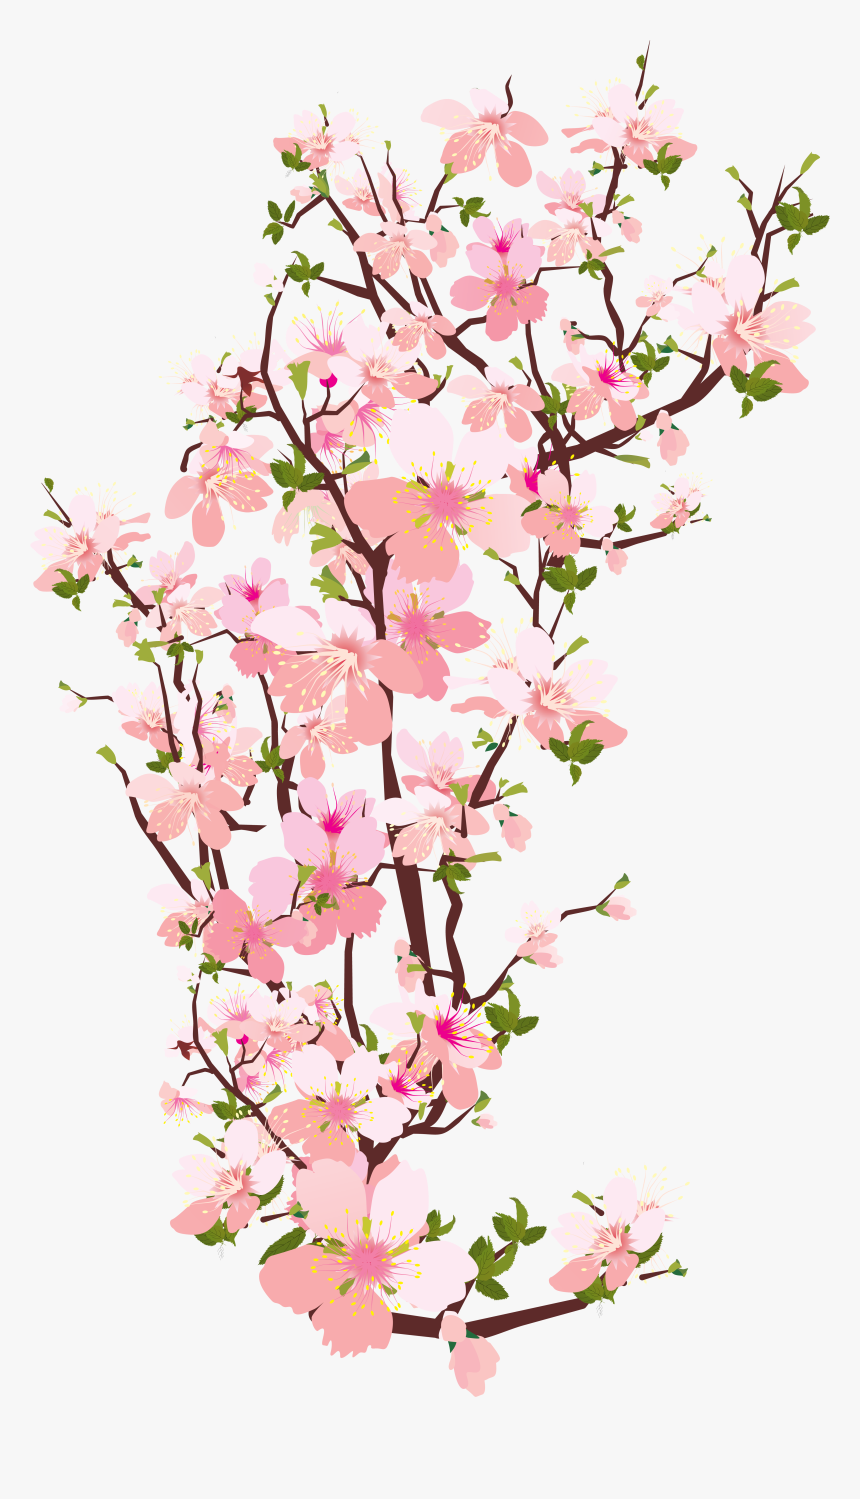 Branch Tree Cherry Blossom Clip Art - Cherry Blossom Branch Transparent, HD Png Download, Free Download